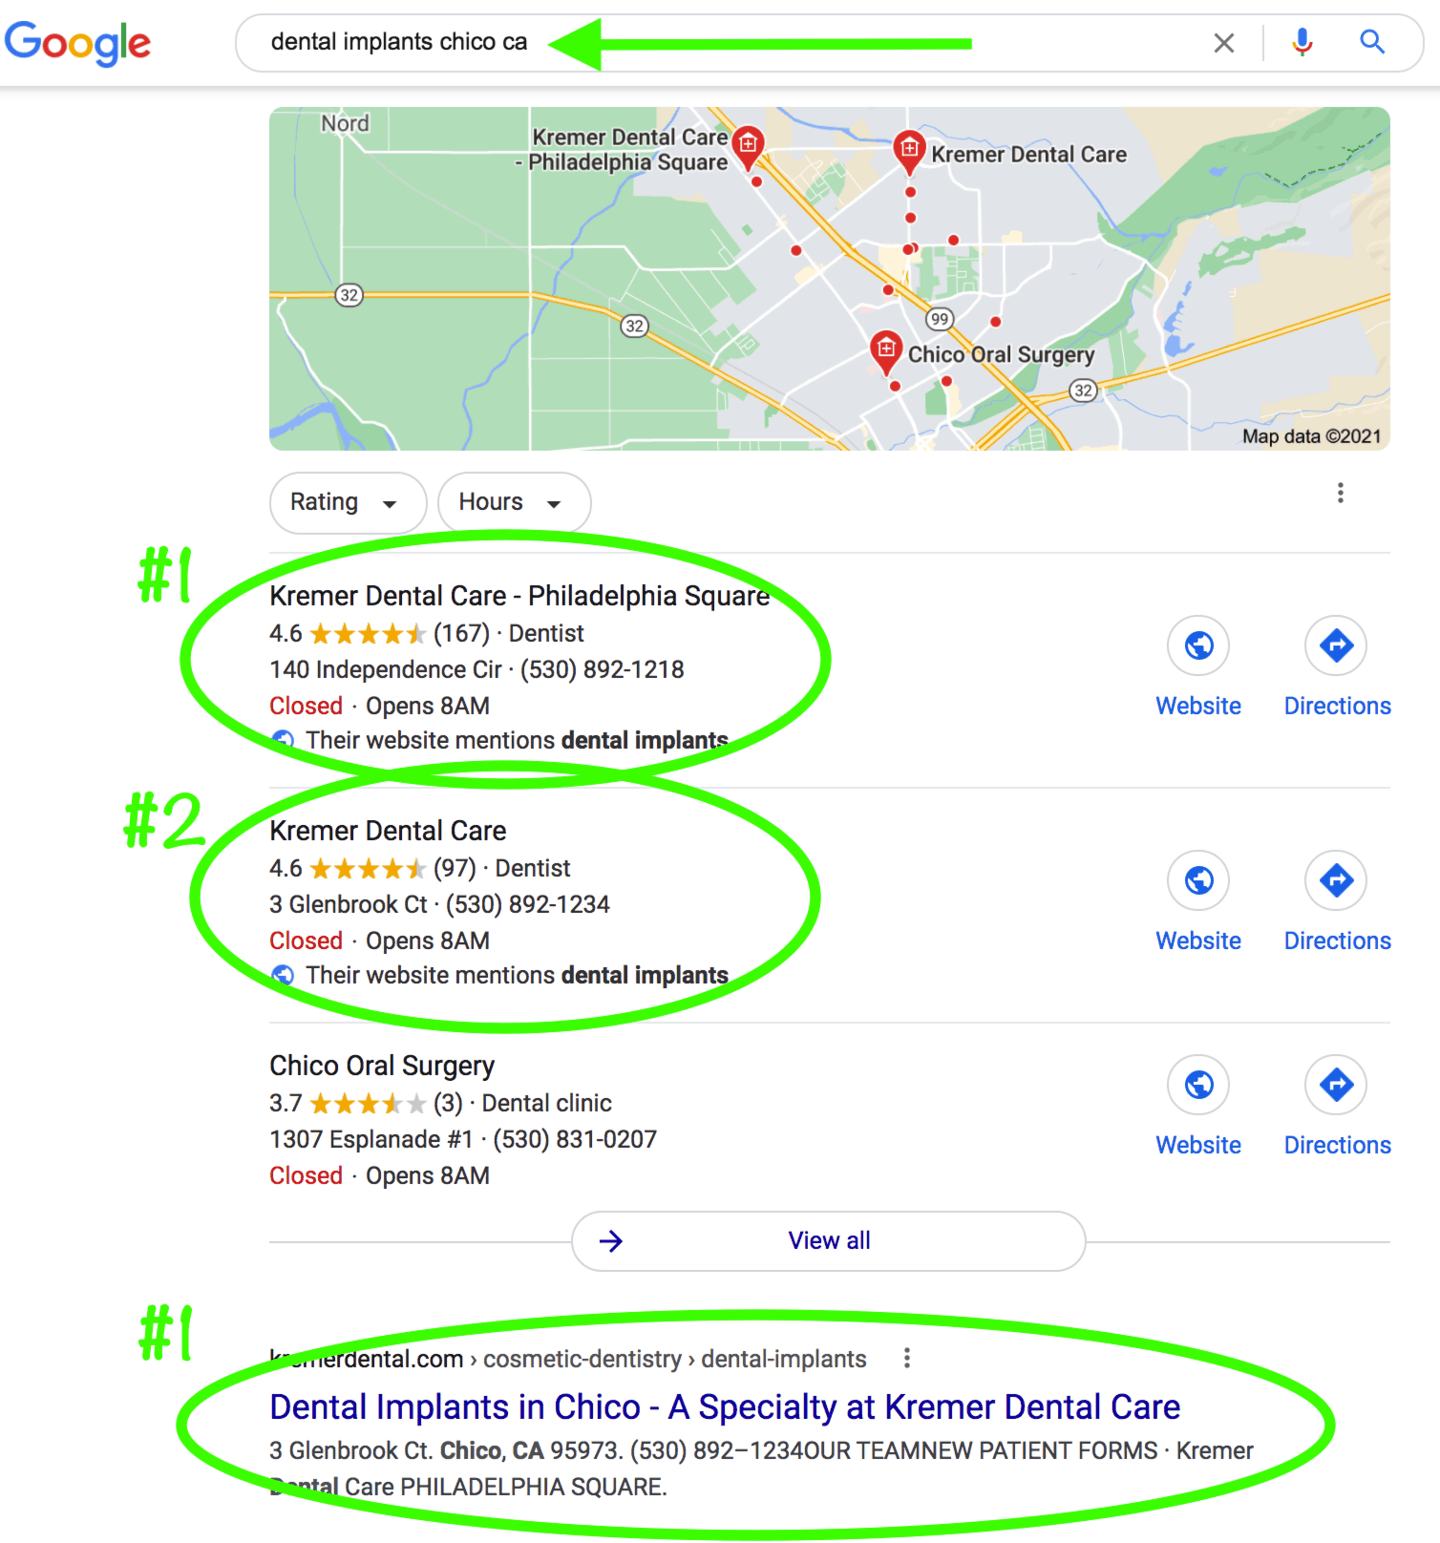 #1 Rank in Google Maps and Google Search